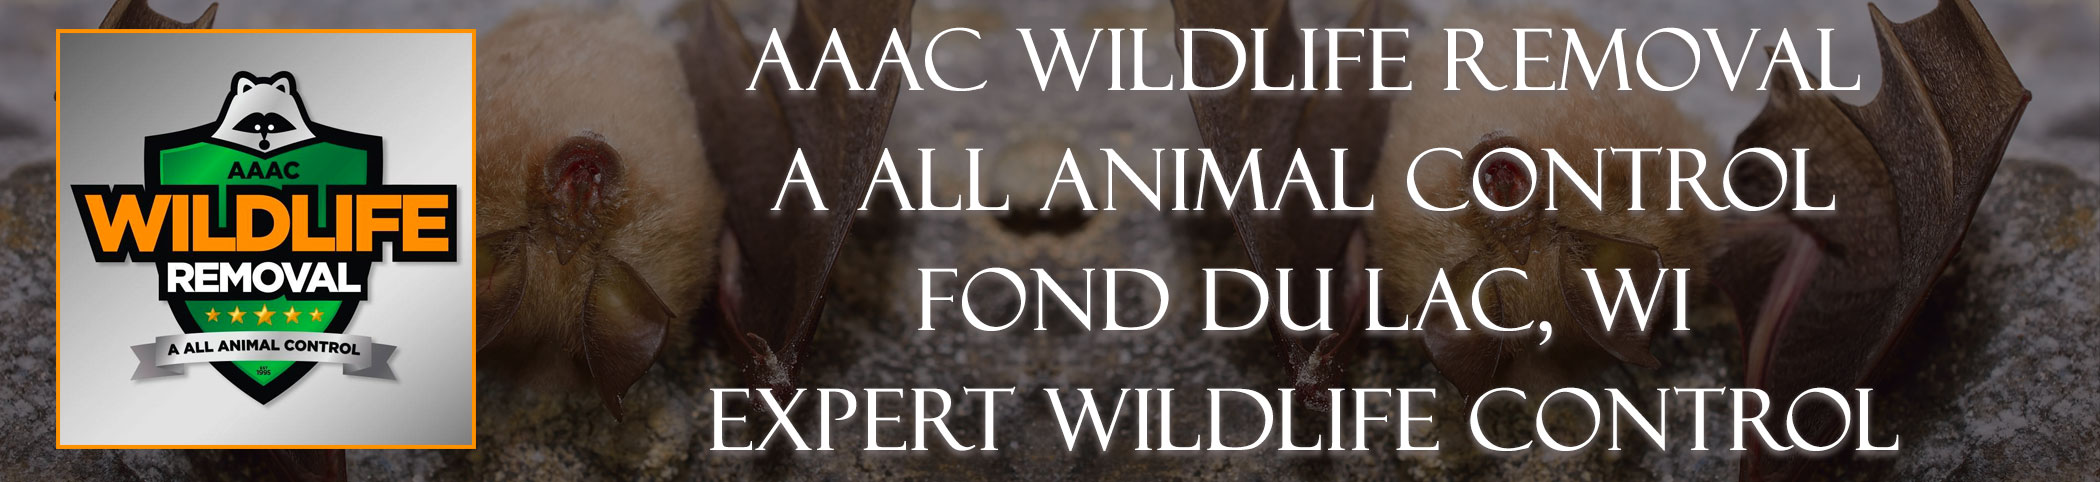 aaac-wildlife-removal-Fond du Lac-wisconsin